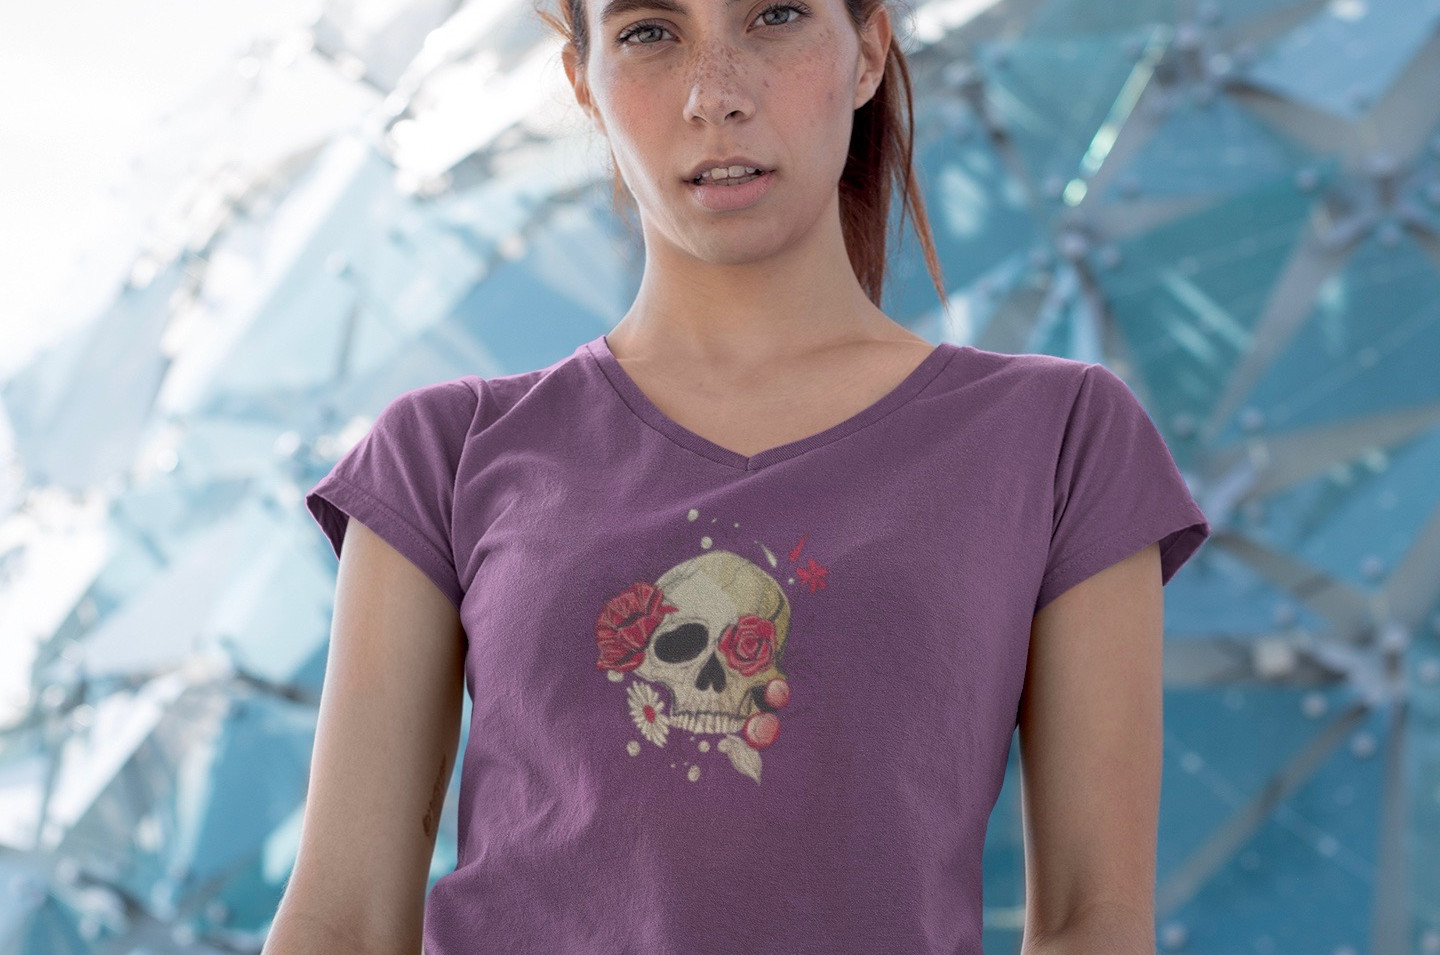 v-neck-tee-mockup-of-a-thin-girl-with-fr